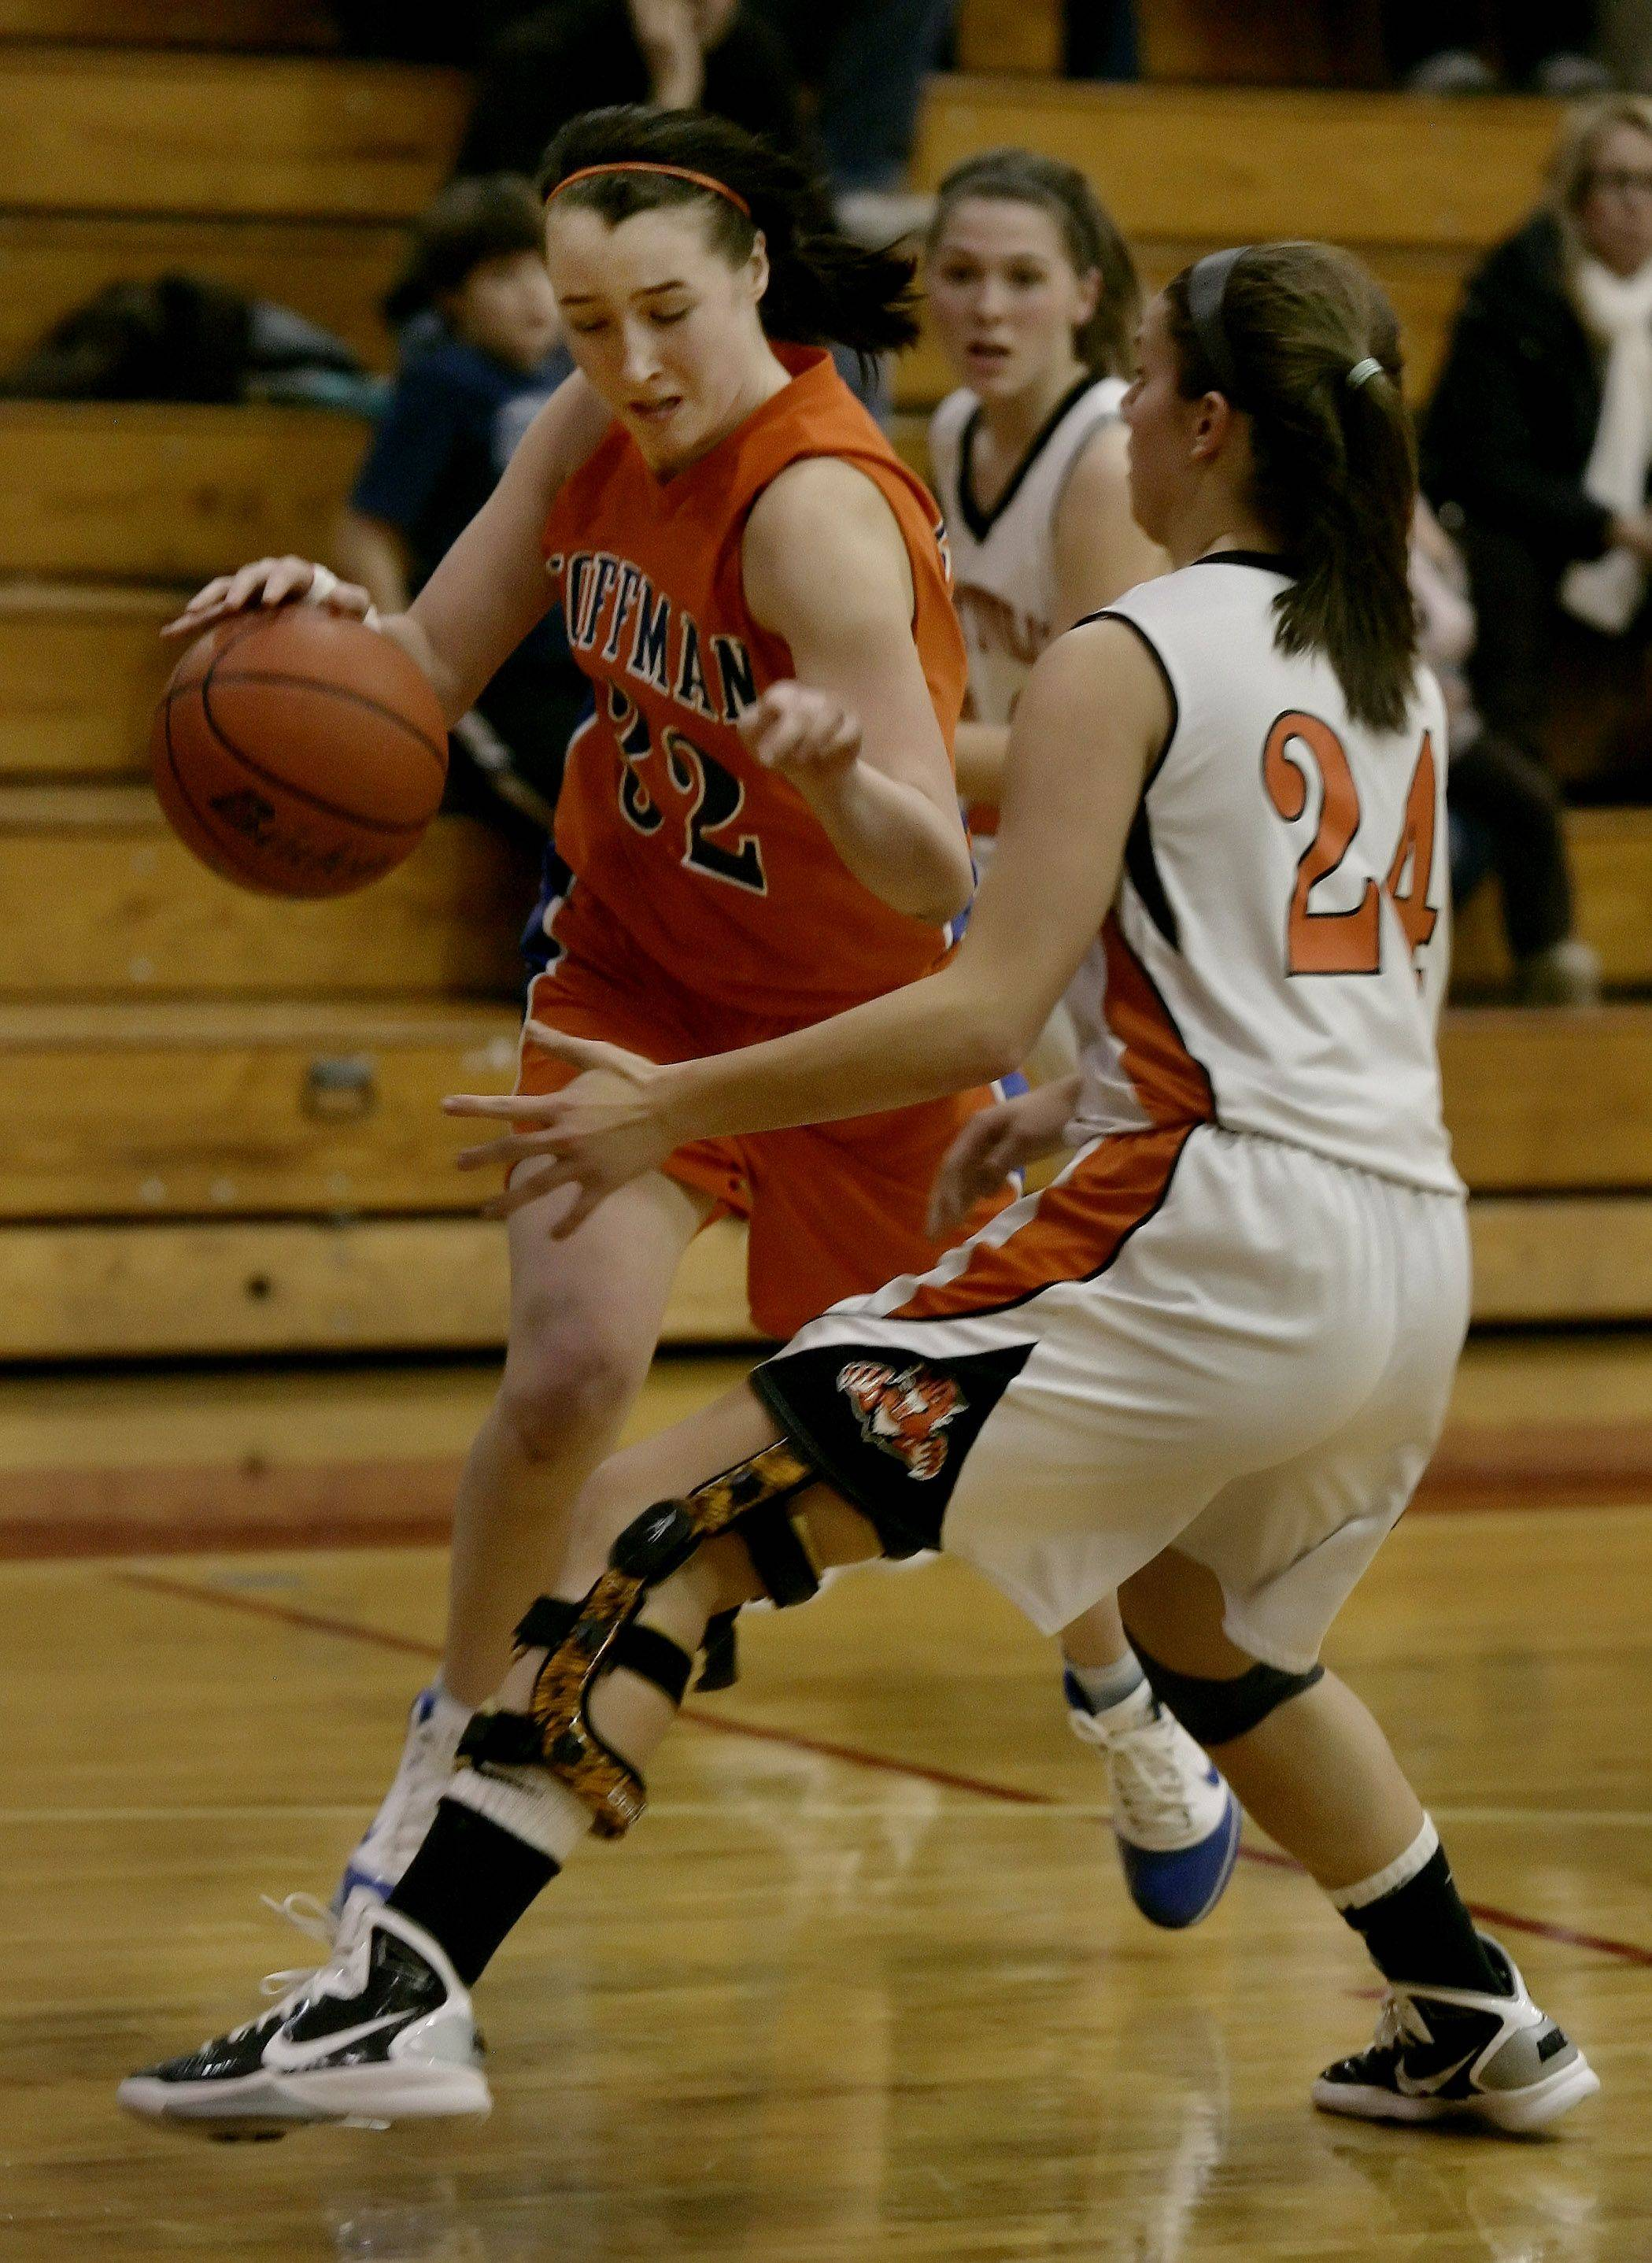 Hoffman Estates' Becca Stoczynski drives past Libertyville's Kaca Savatic during the girls basketball game Wednesday at the Lady Mustangs Holiday Classic at Mundelein High School.